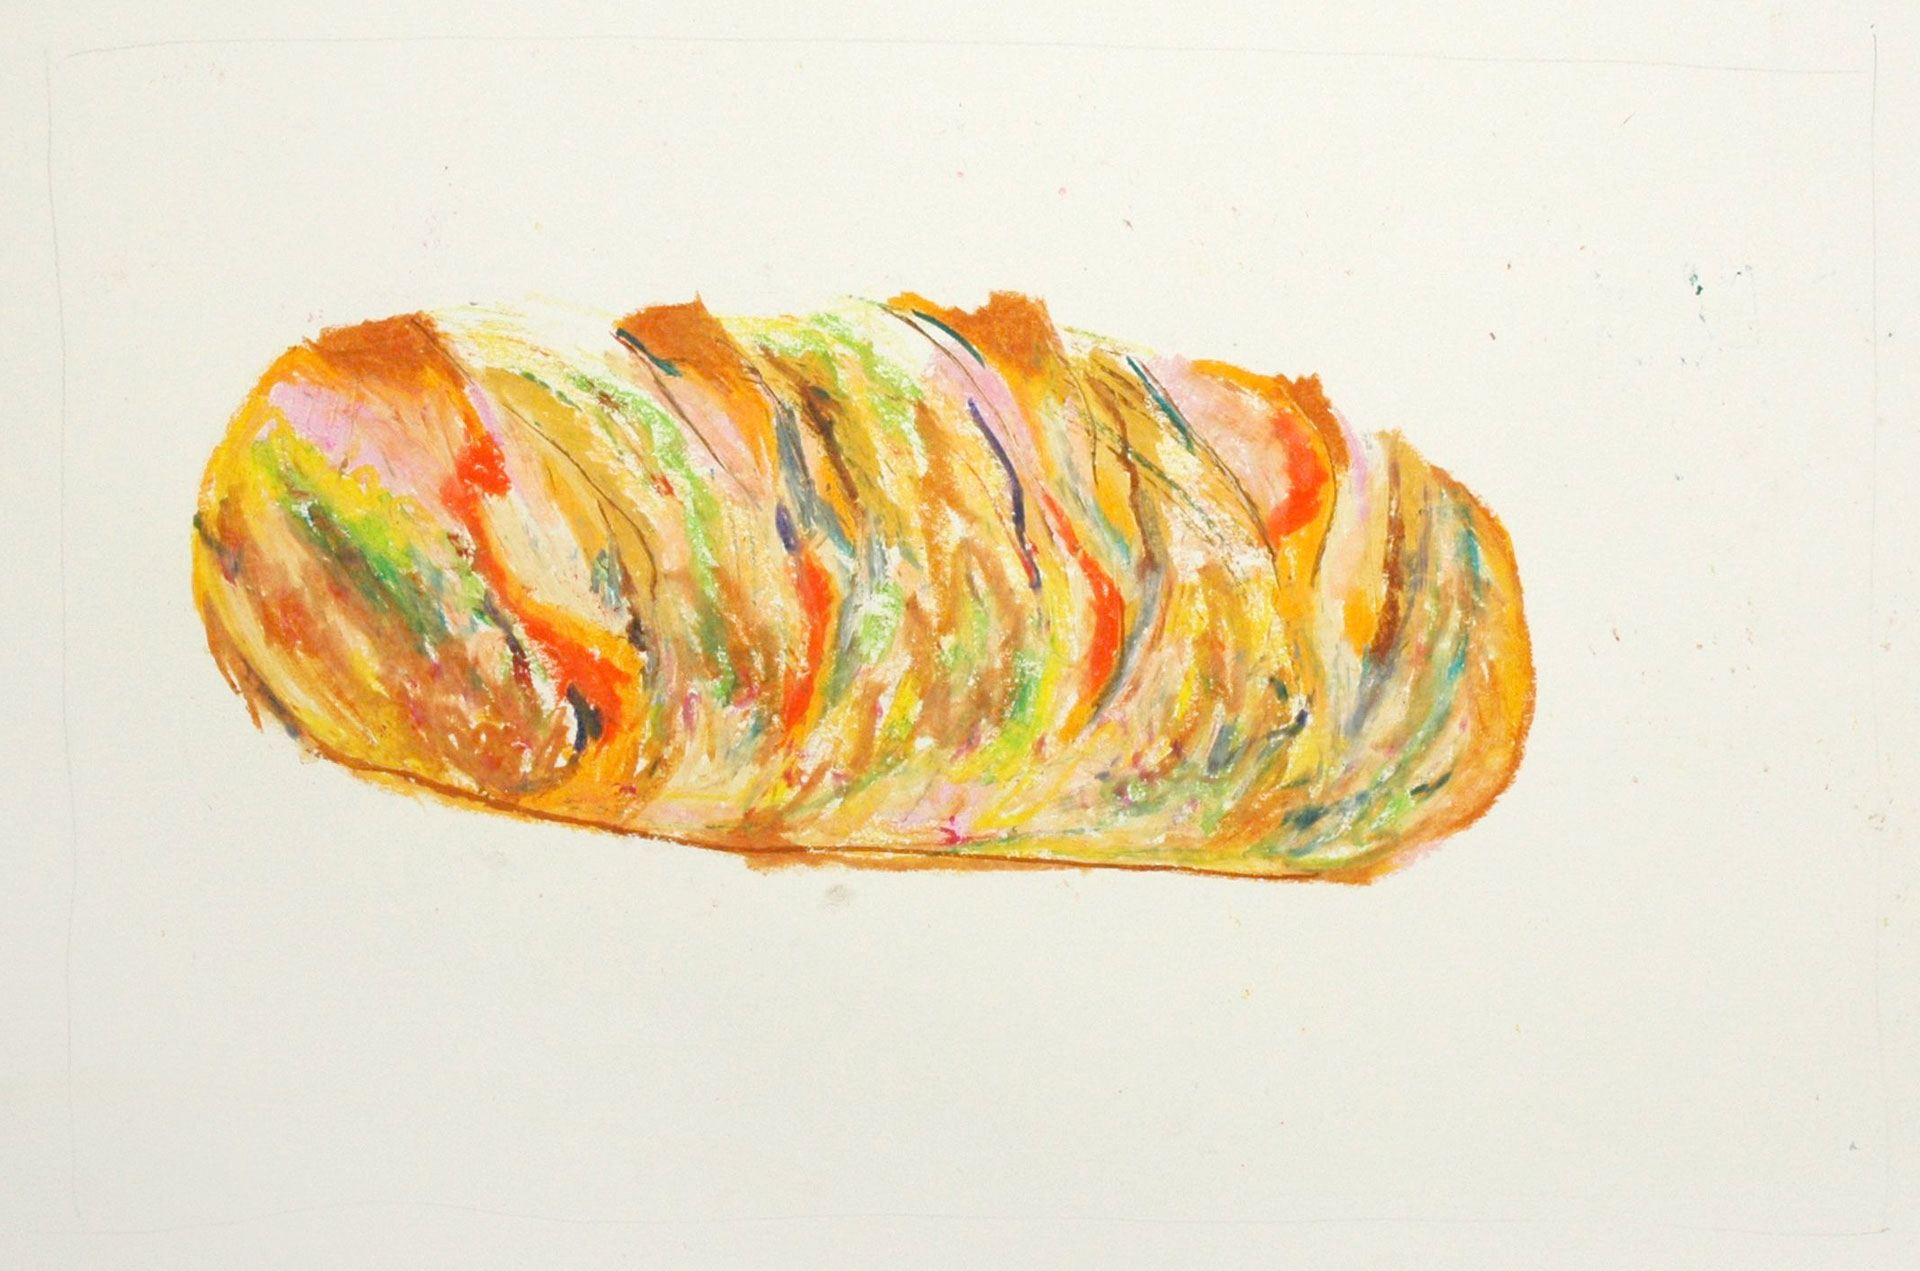 Ohne Titel   The Becoming of Bread   Angelika Beuler   2014